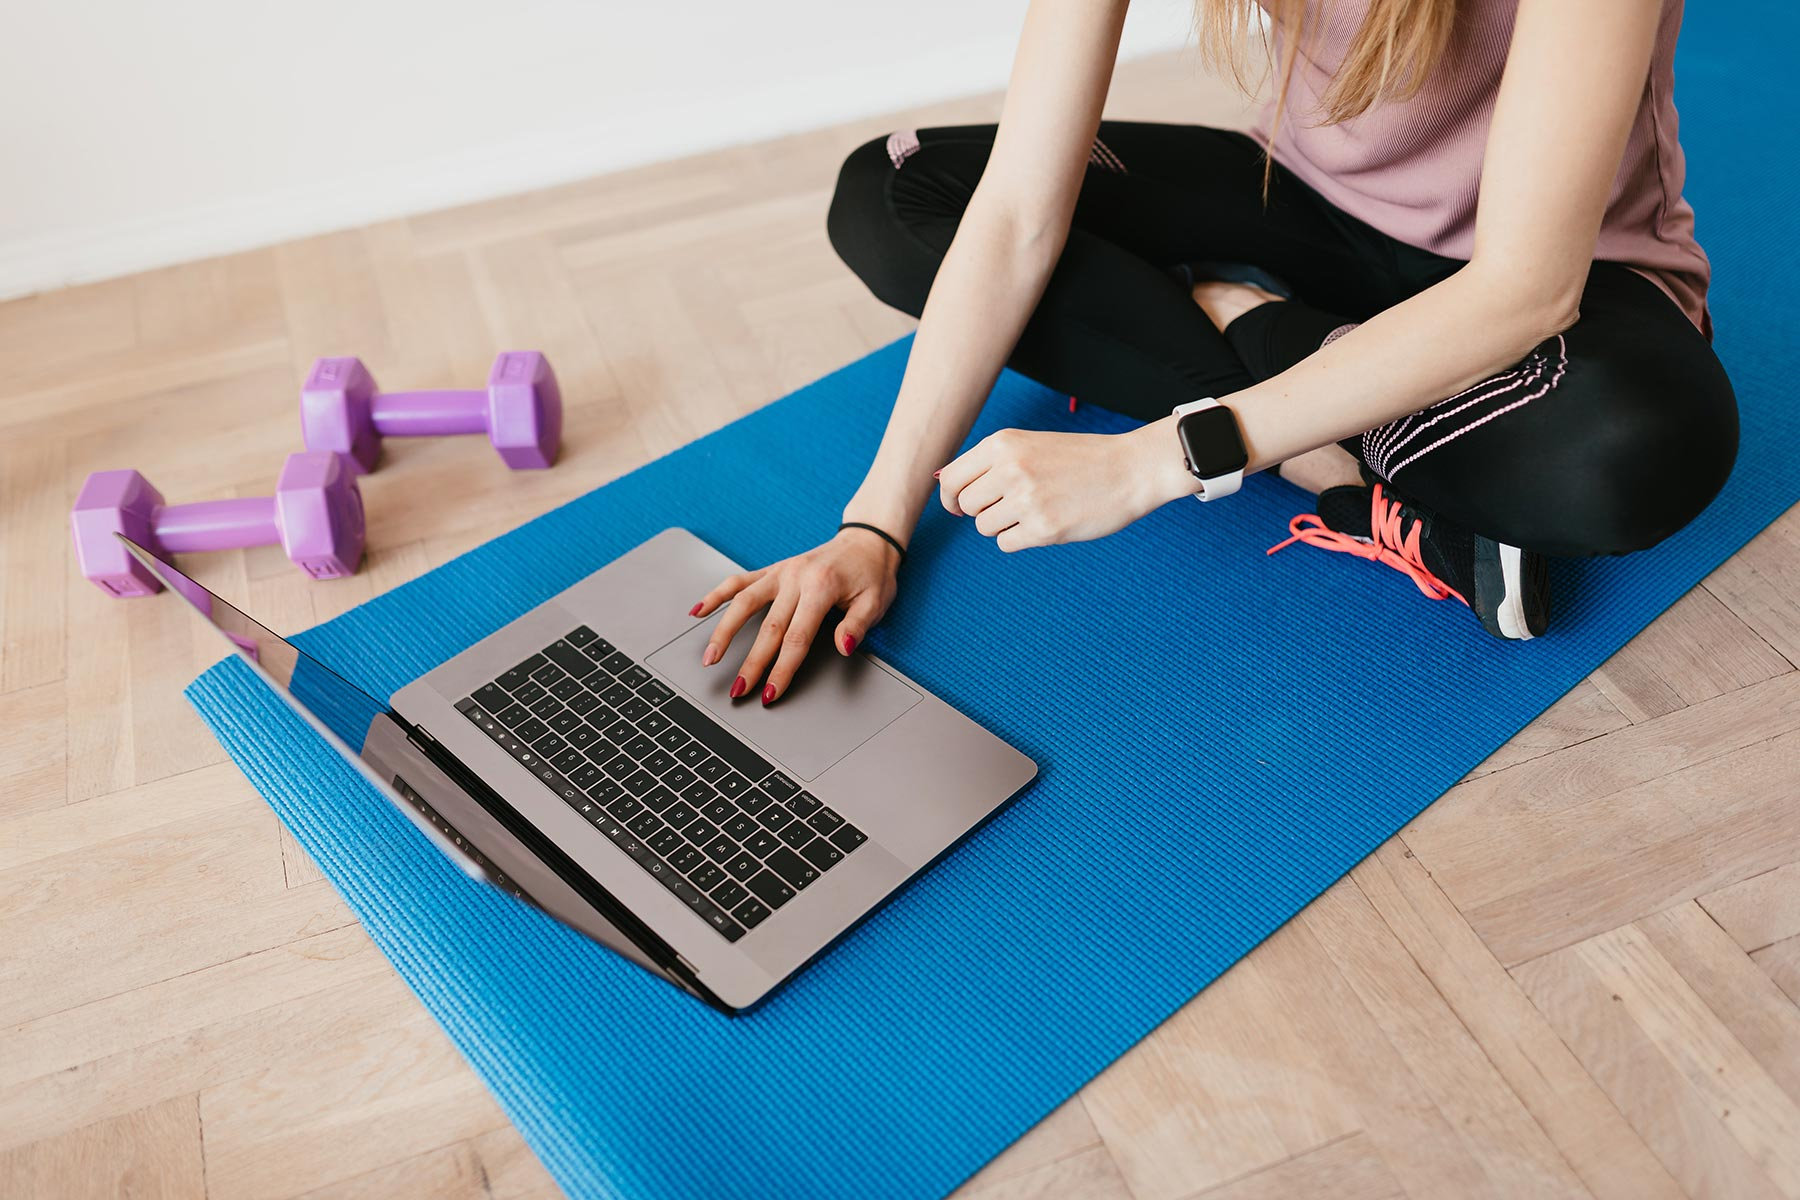 Best online fitness classes in Cobb County